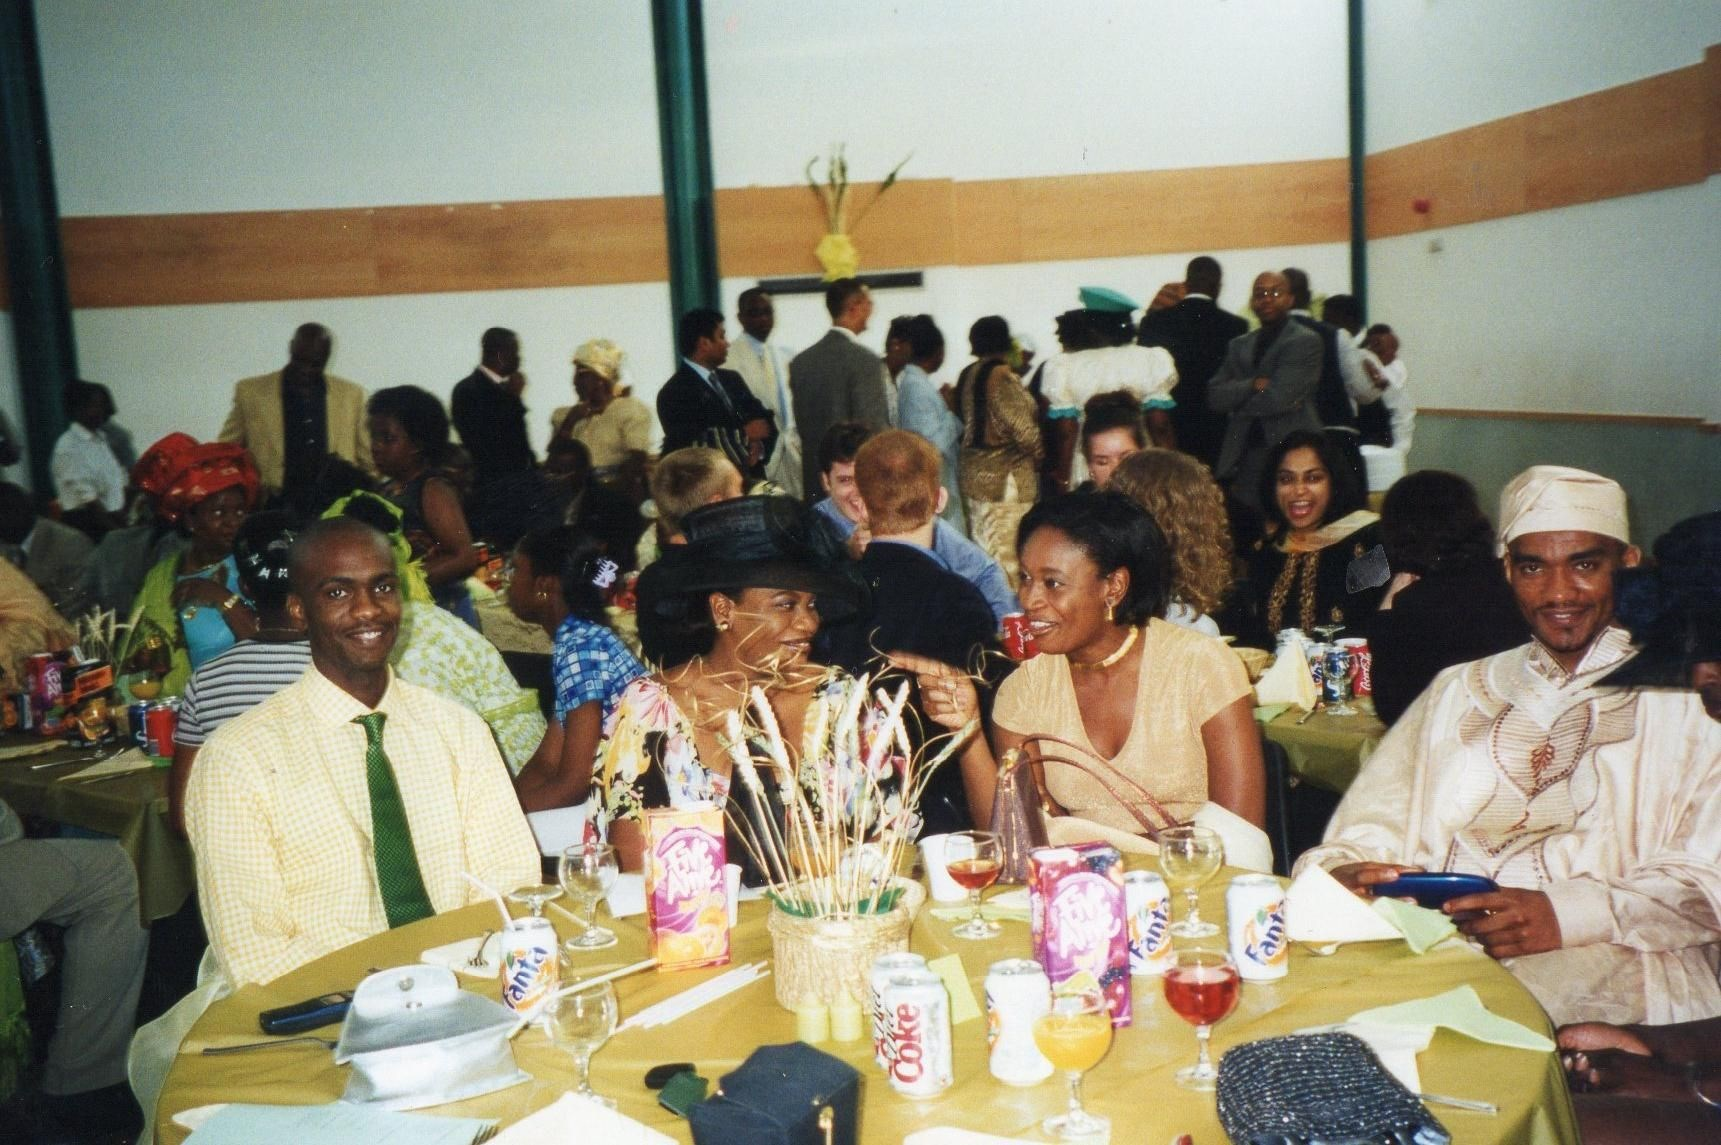 Eugene, Nwamaka, Ijeoma & Douglas at Laura's wedding - Aug. 1999